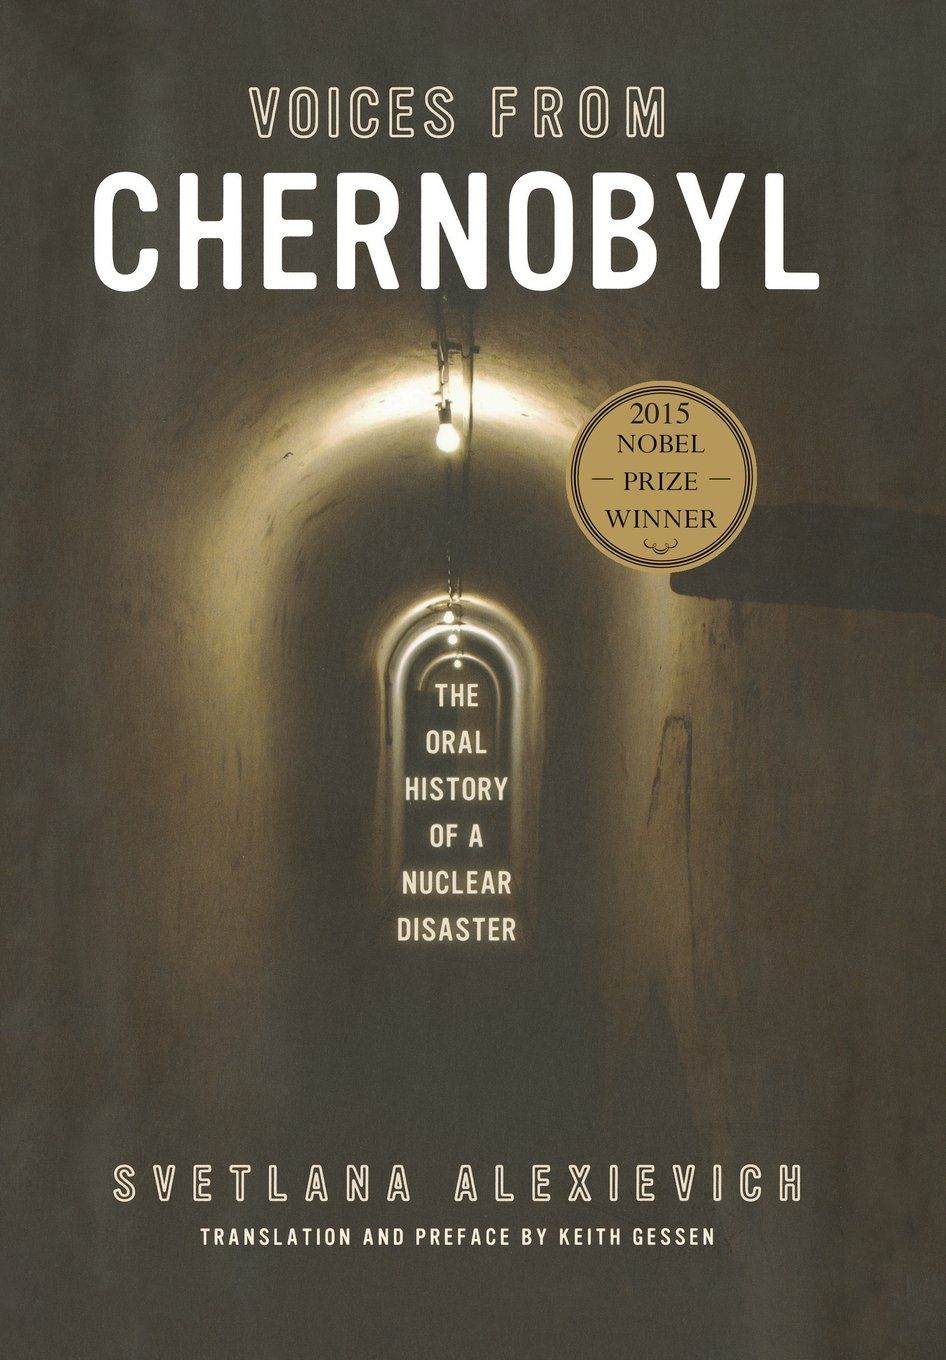 voices-from-chernobyl-book-cover